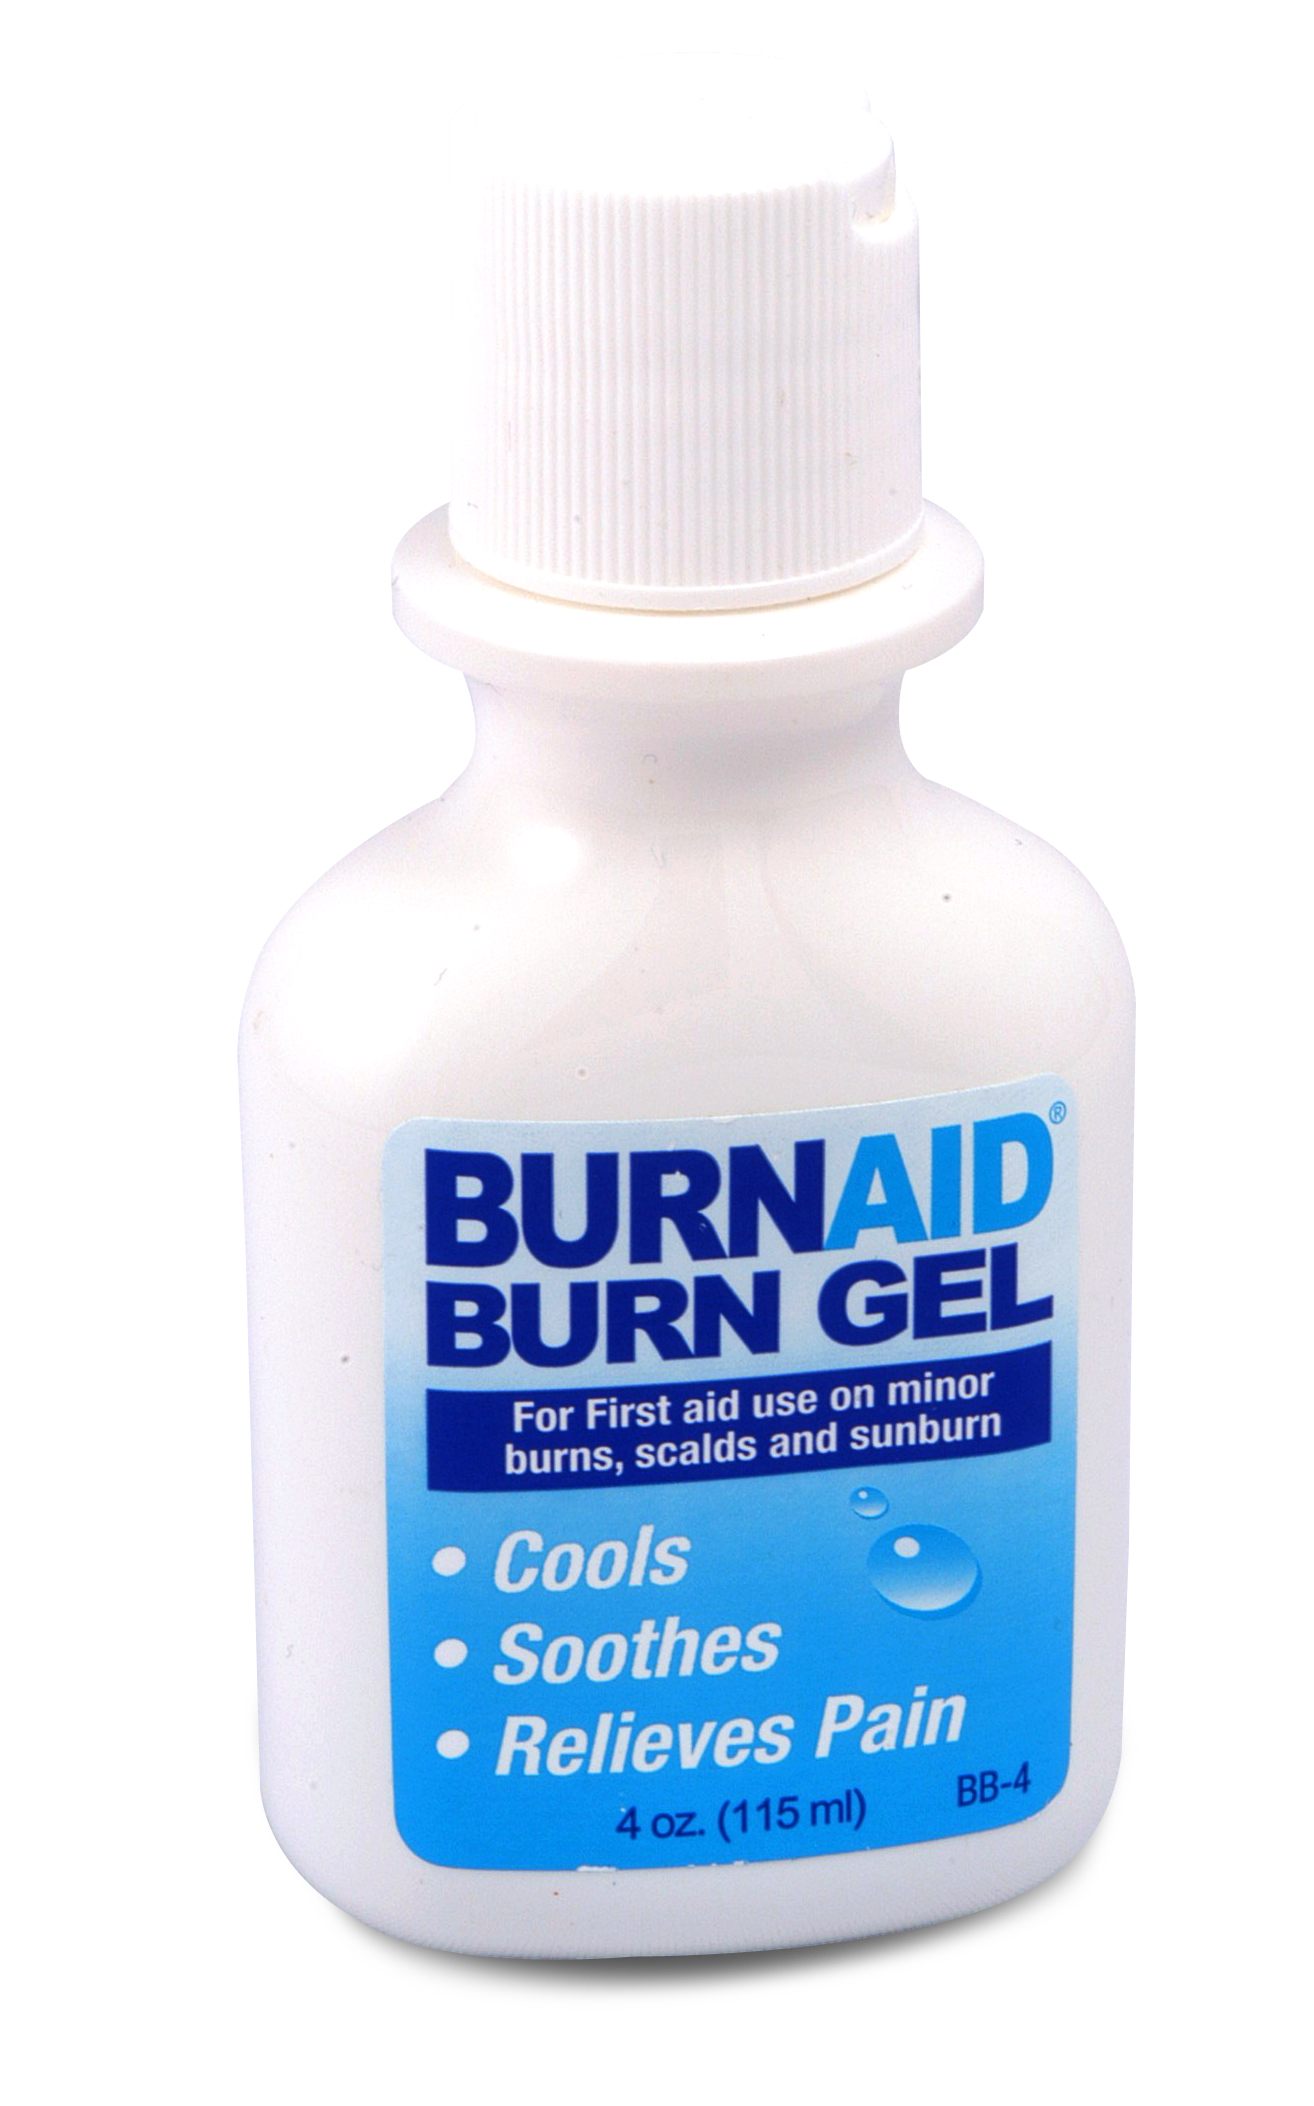 Cool Blaze Burn Gel 118ml Bottle image